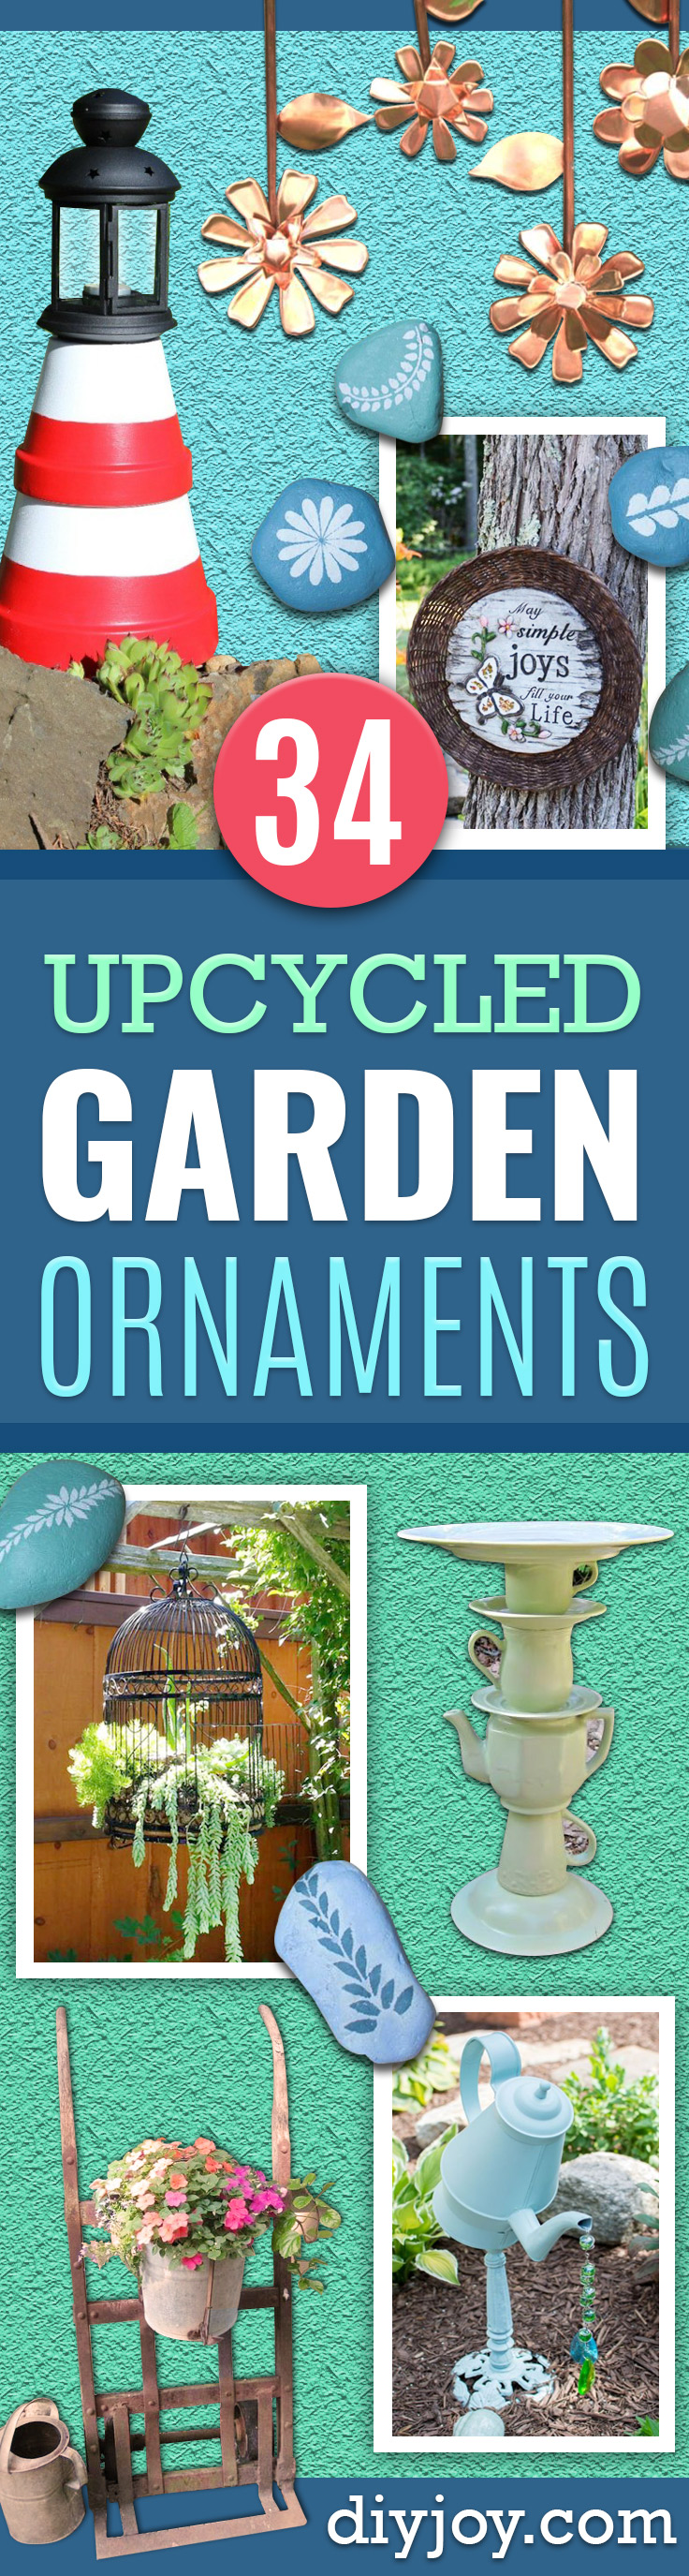 DIY Garden Decor Ideas - Crafts for Outdoors - DYI Garden Ornaments to Make for Backyard Decoration - Upcycled Thrift Store Ideas for Gardening Projects